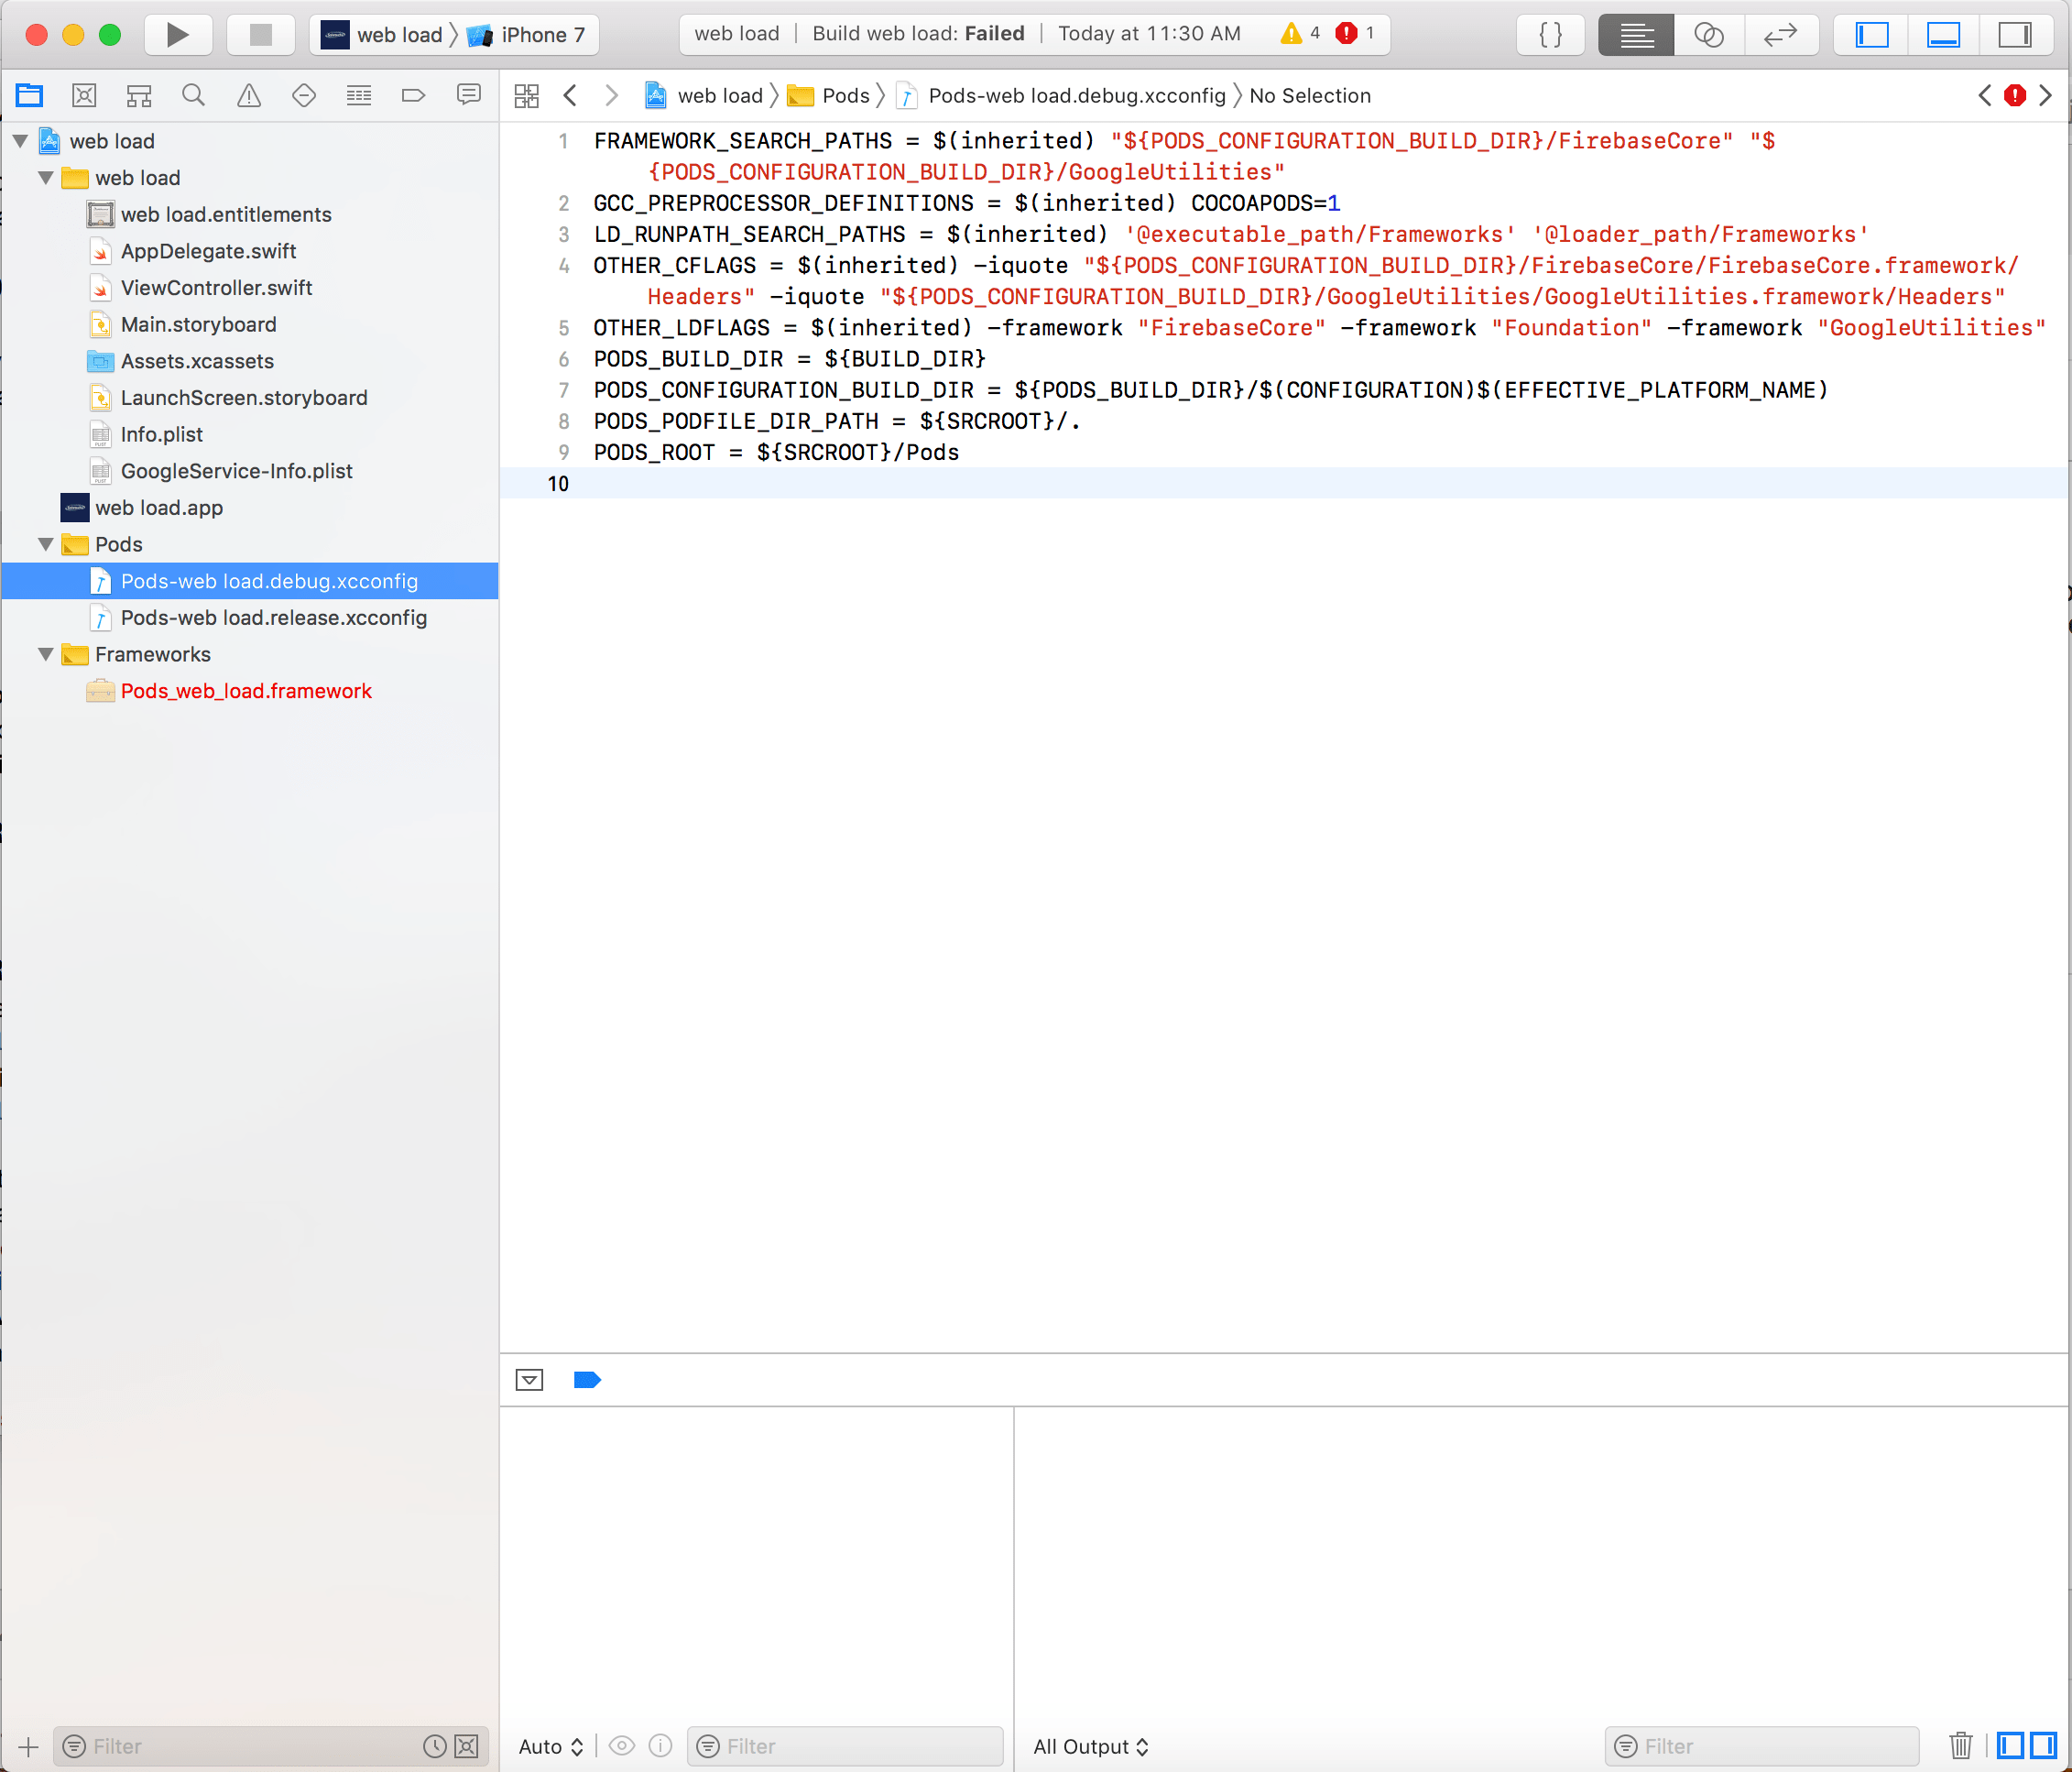 ios - linker command failed with exit code 1 (use -v to see invocation) xcode firebase - Stack Overflow